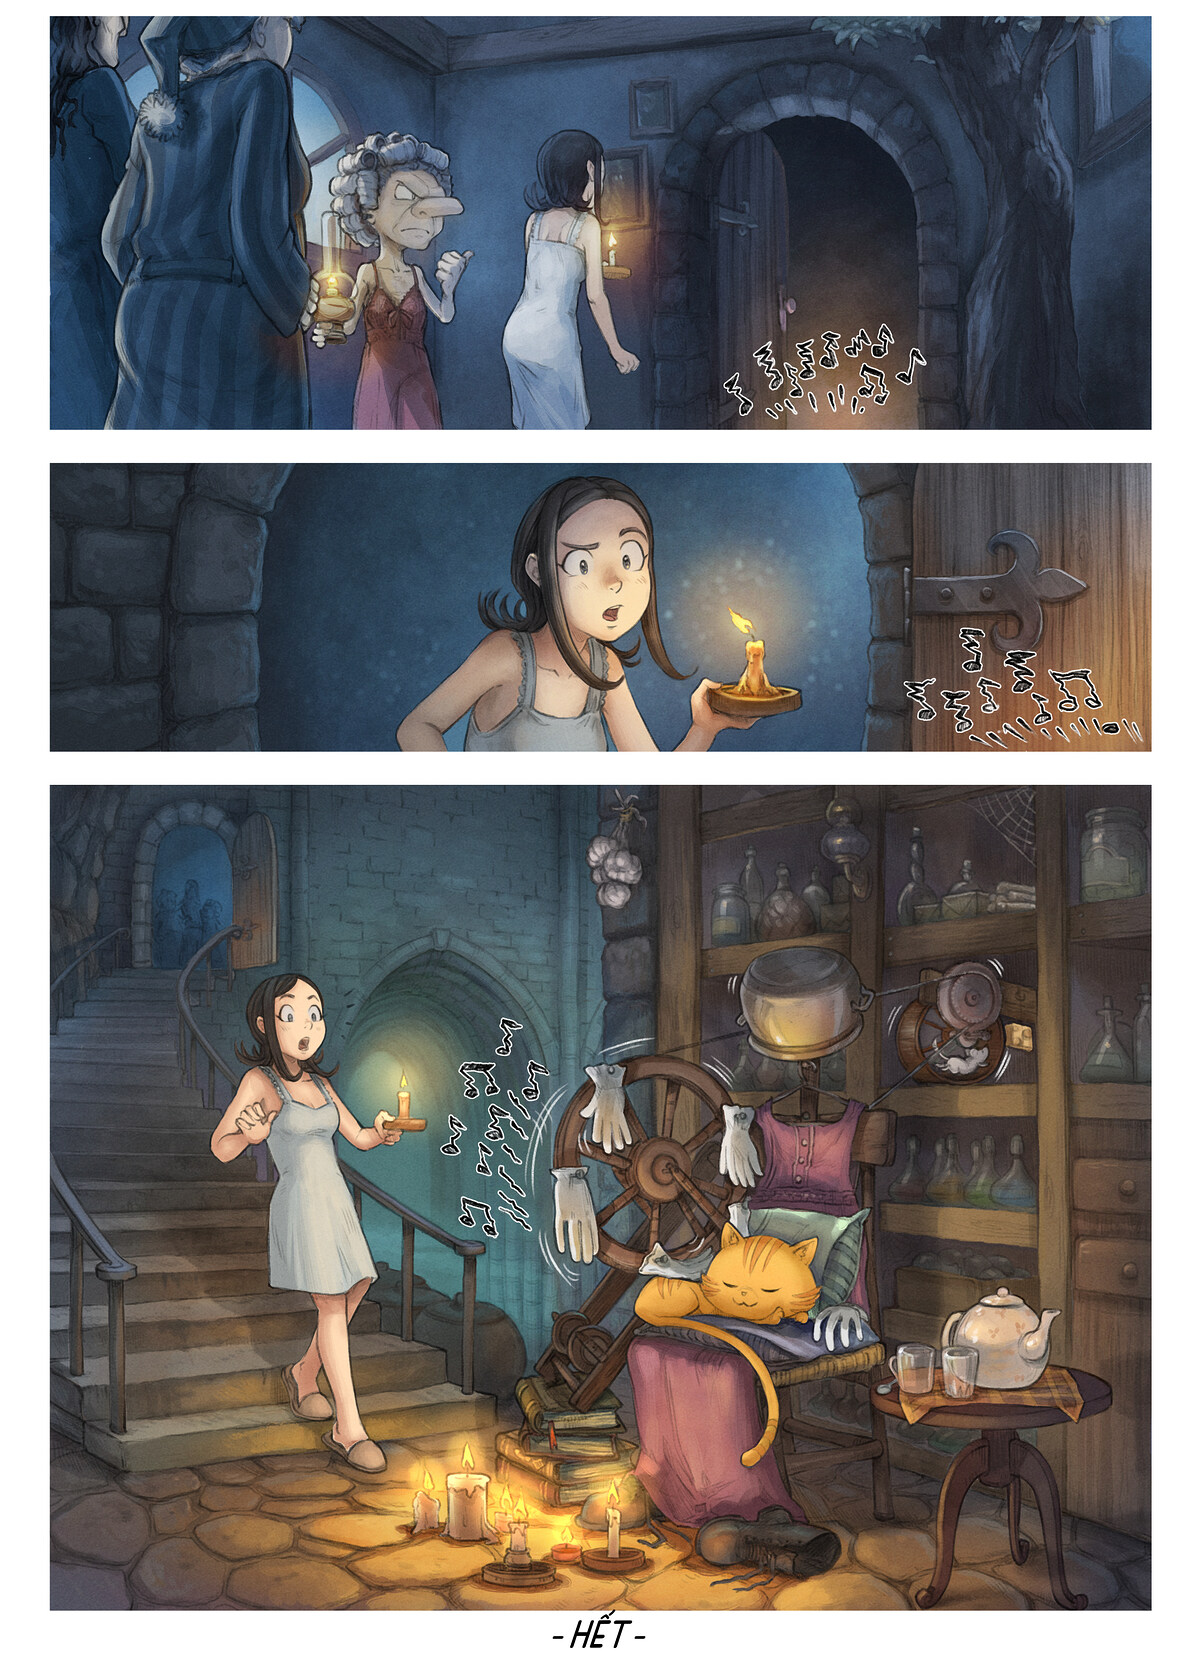 A webcomic page of Pepper&Carrot, Tập 30 [vi], trang 6